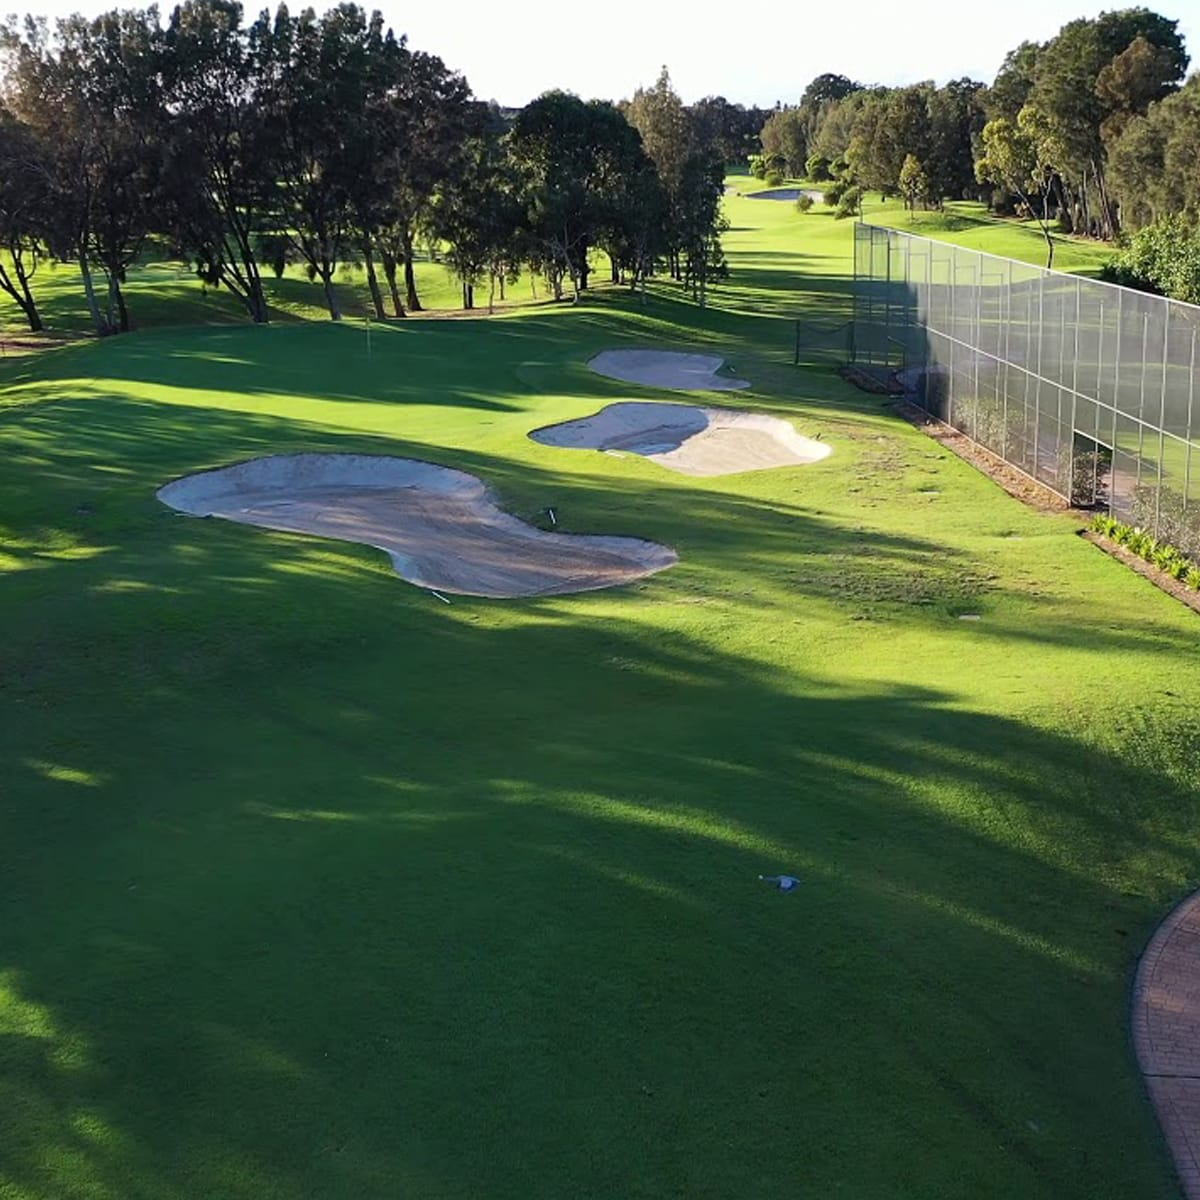 Here are some views of the golf course at Cronulla Golf Club